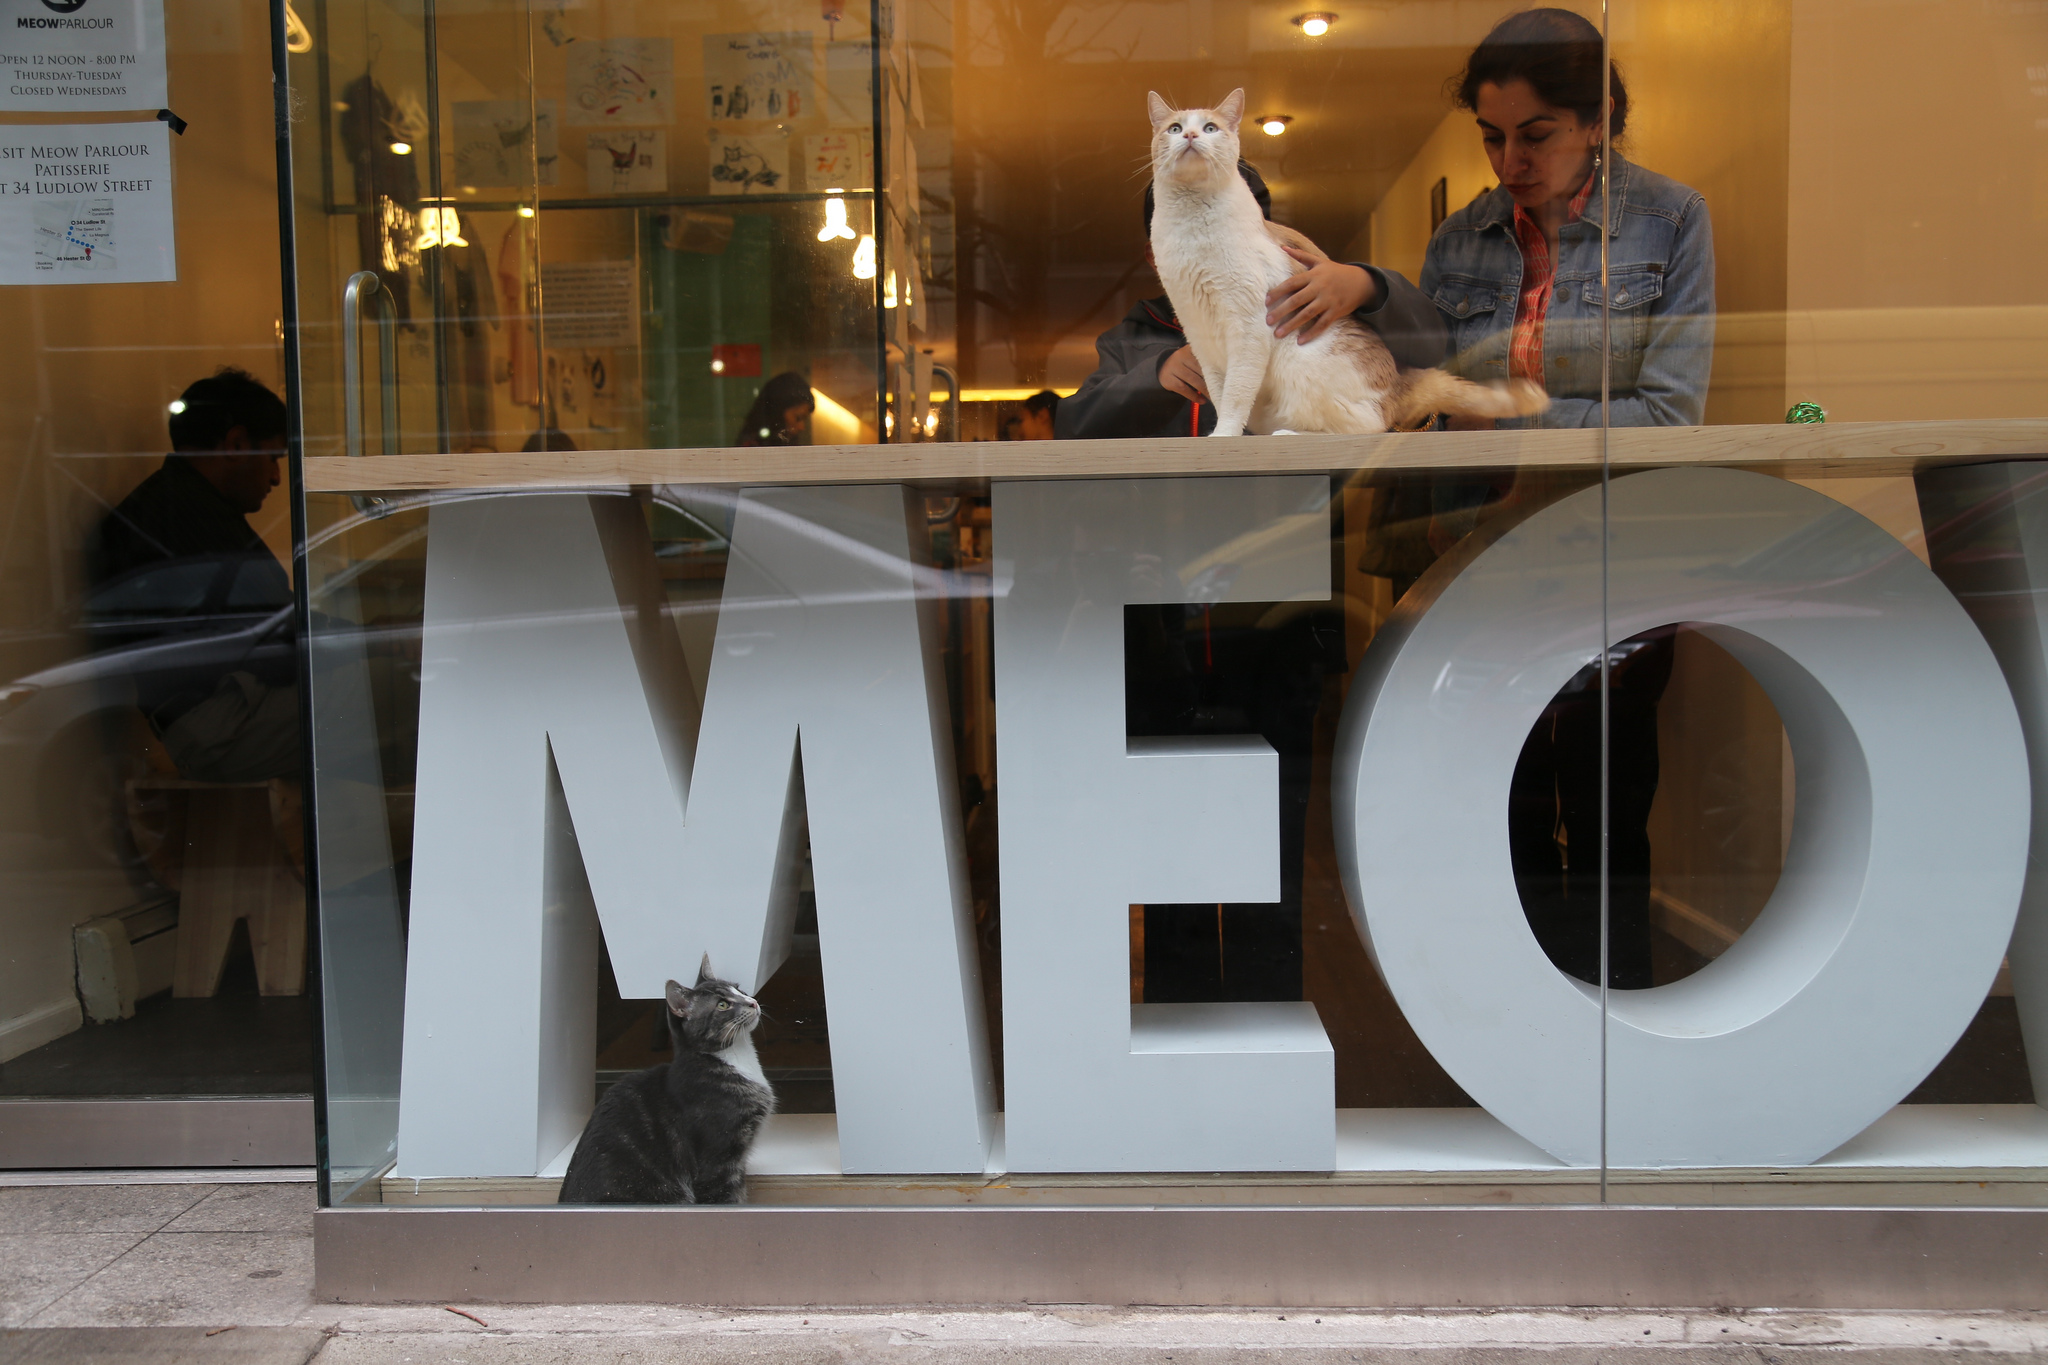 Try cat yoga at Meow Parlour in New York City. Photo Credit: Nuno Cardoso via Flickr